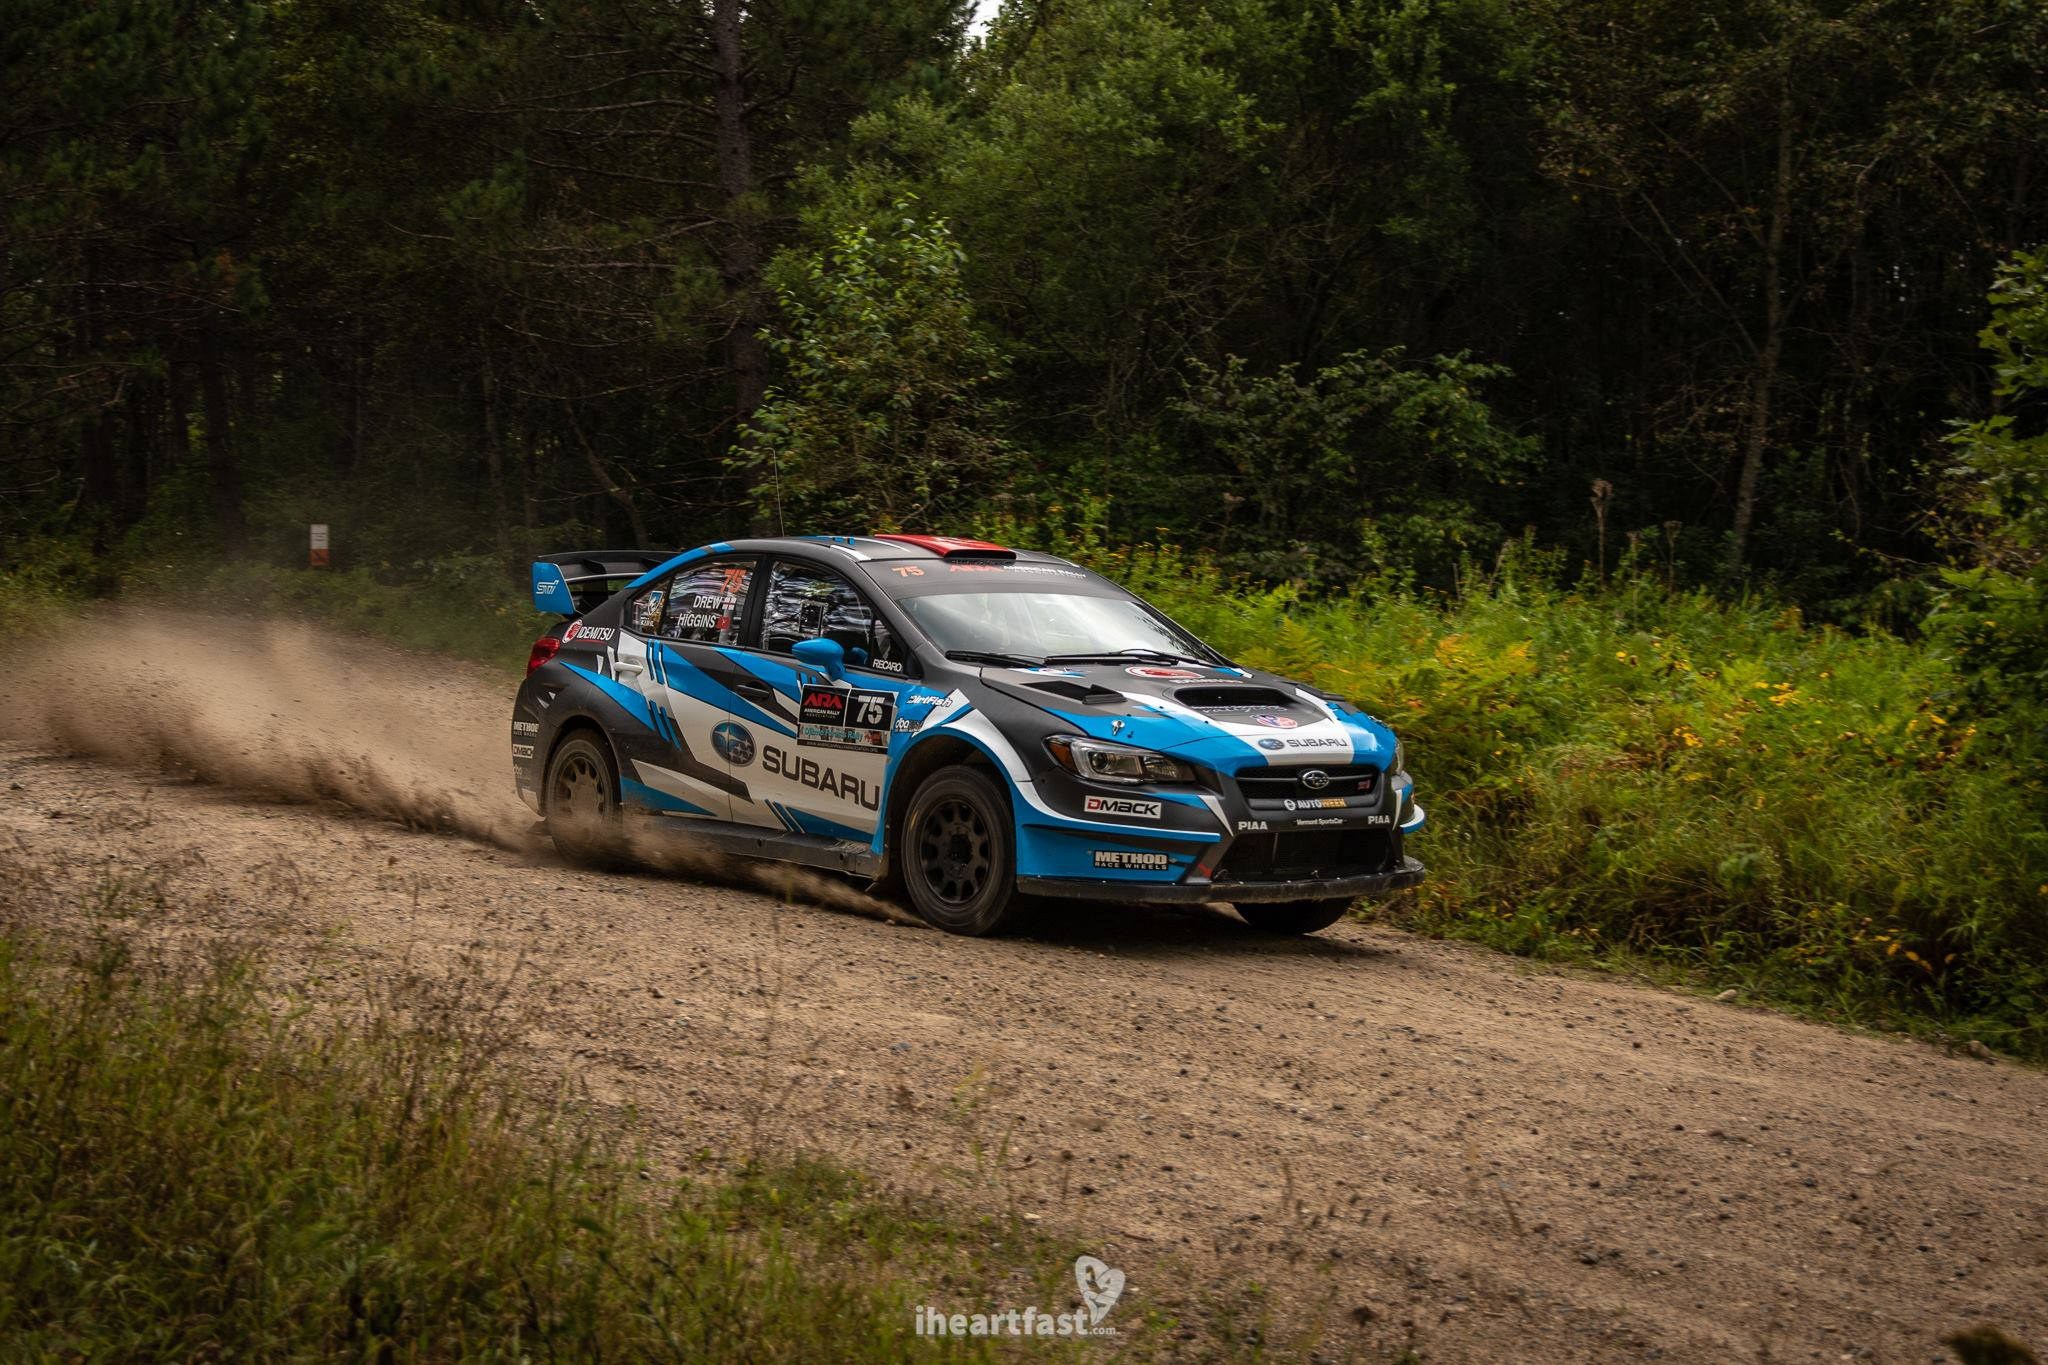 David Higgins & Craig Drew of Subaru Rally Team USA on their way to victory at Ojibwe Forests Rally